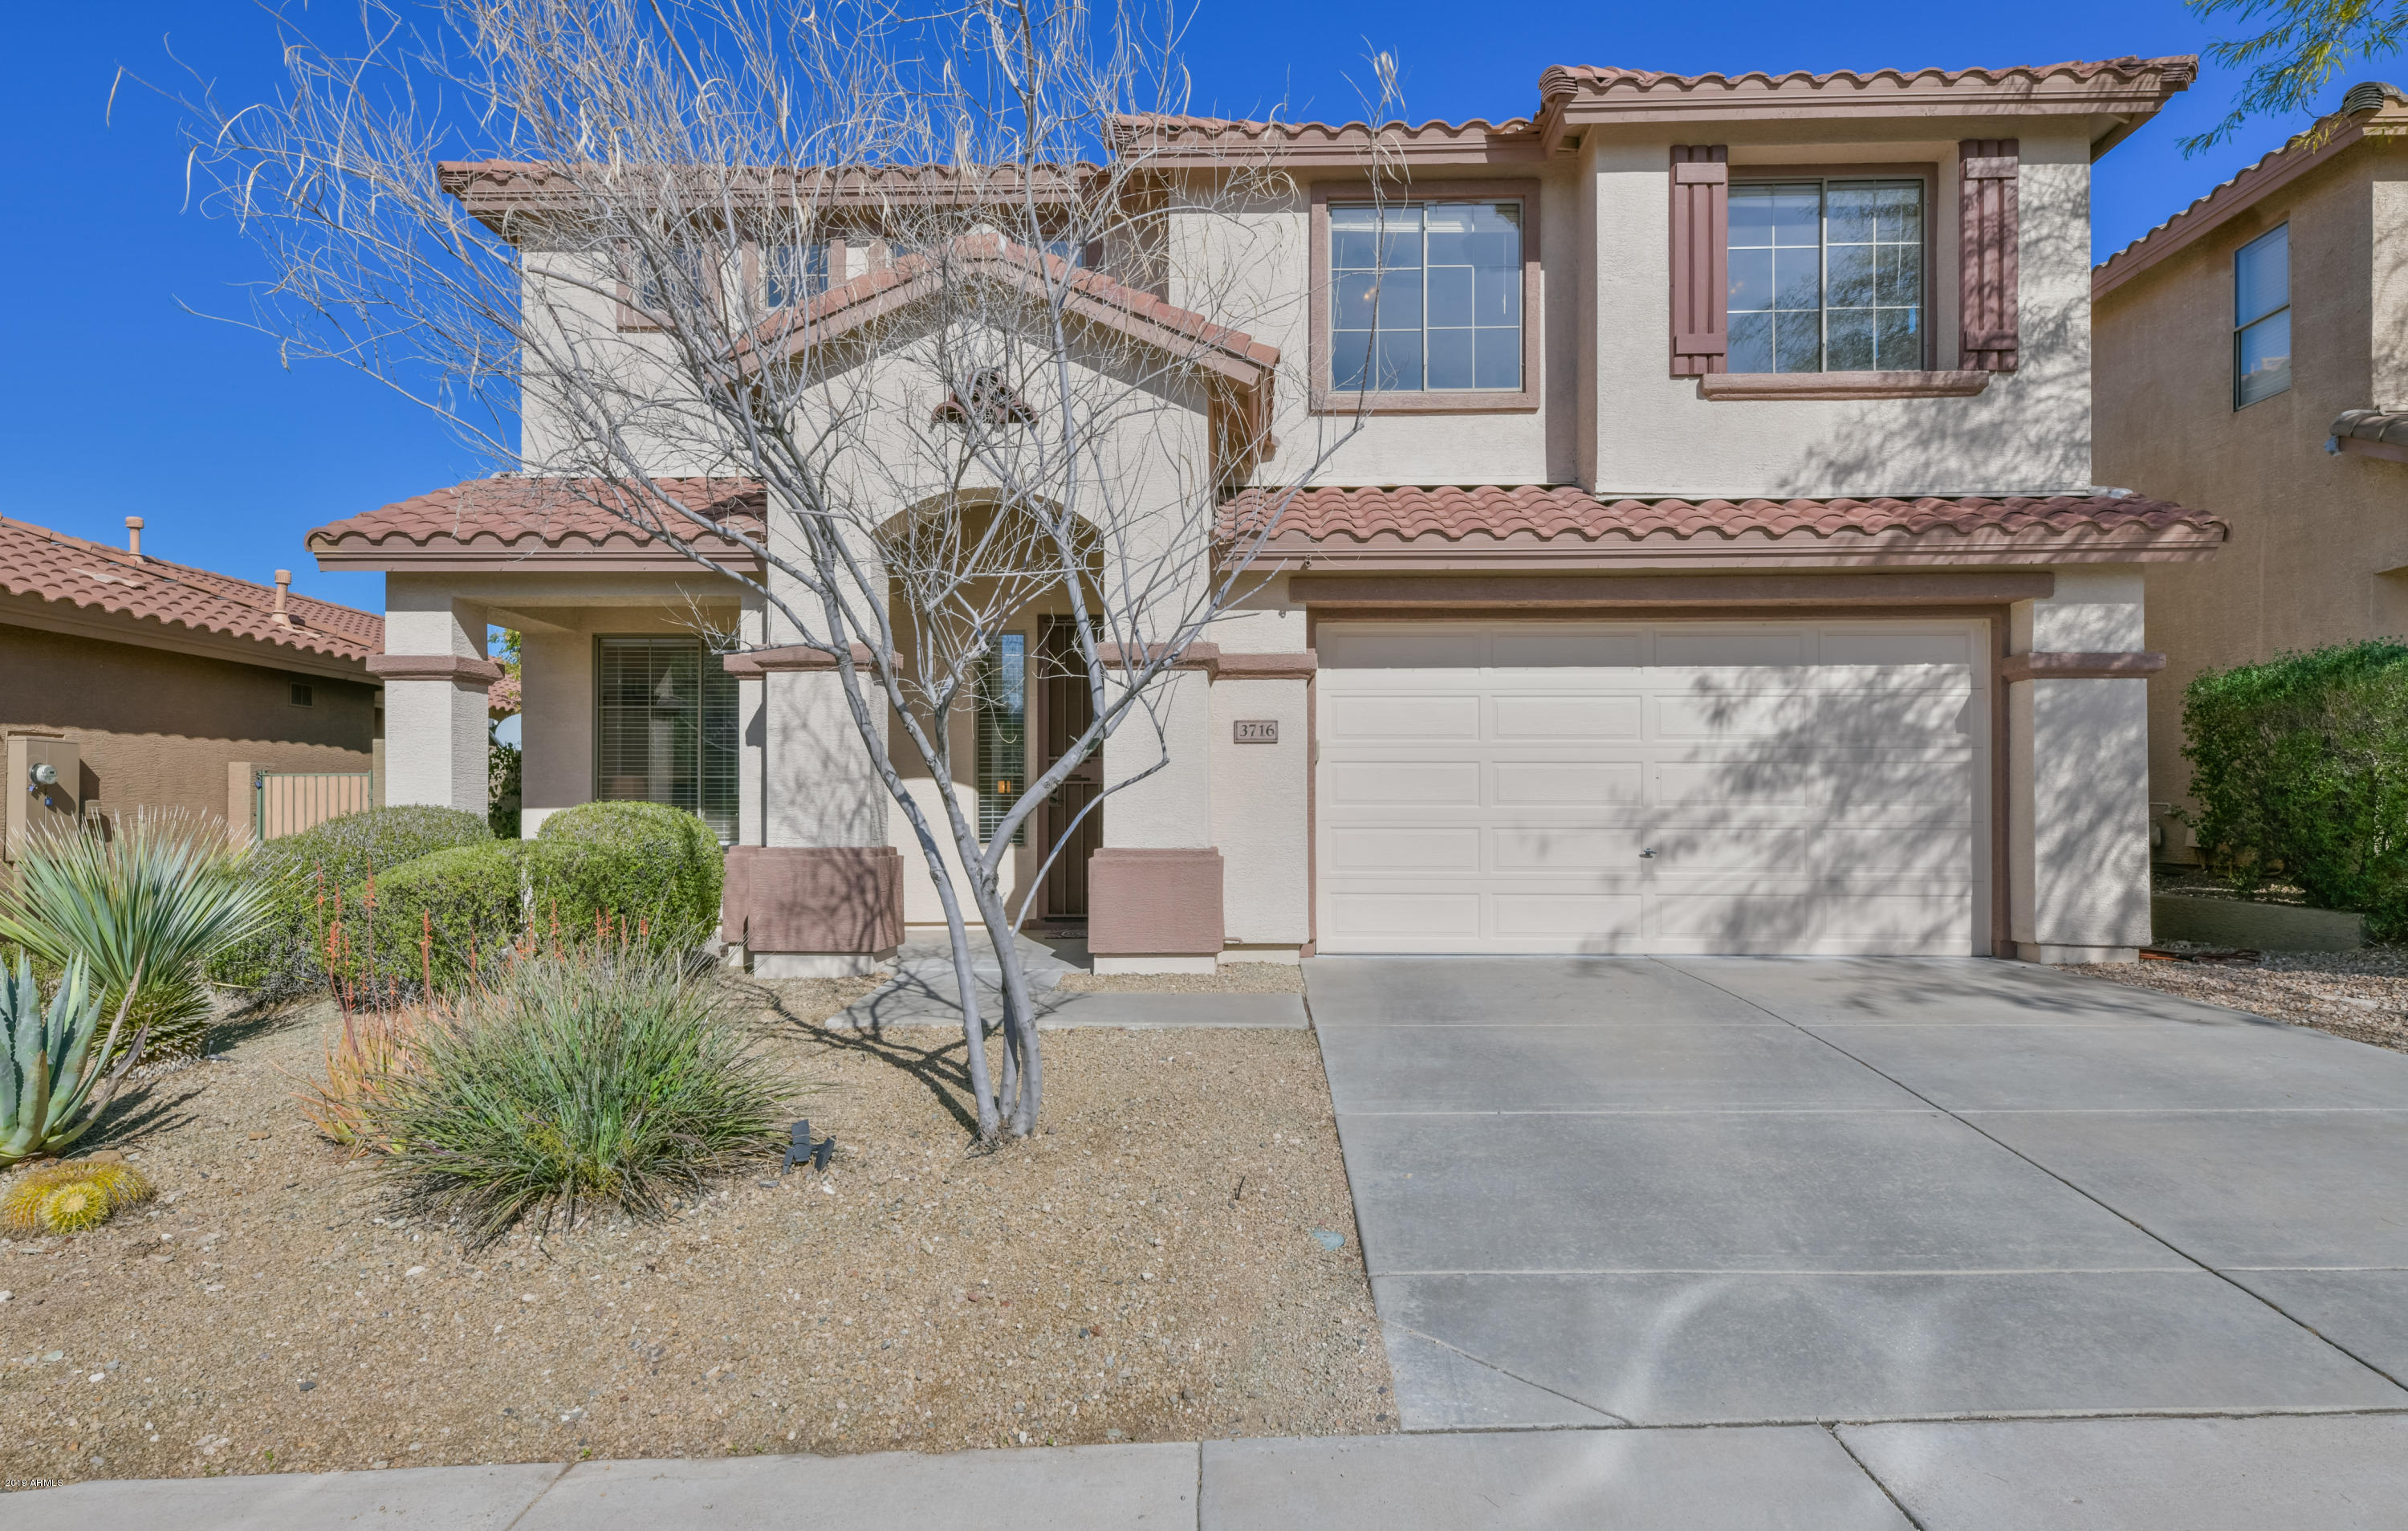 3716 W DENALI Drive, Anthem, 85086, MLS # 5893098 | Better Homes and  Gardens BloomTree Realty